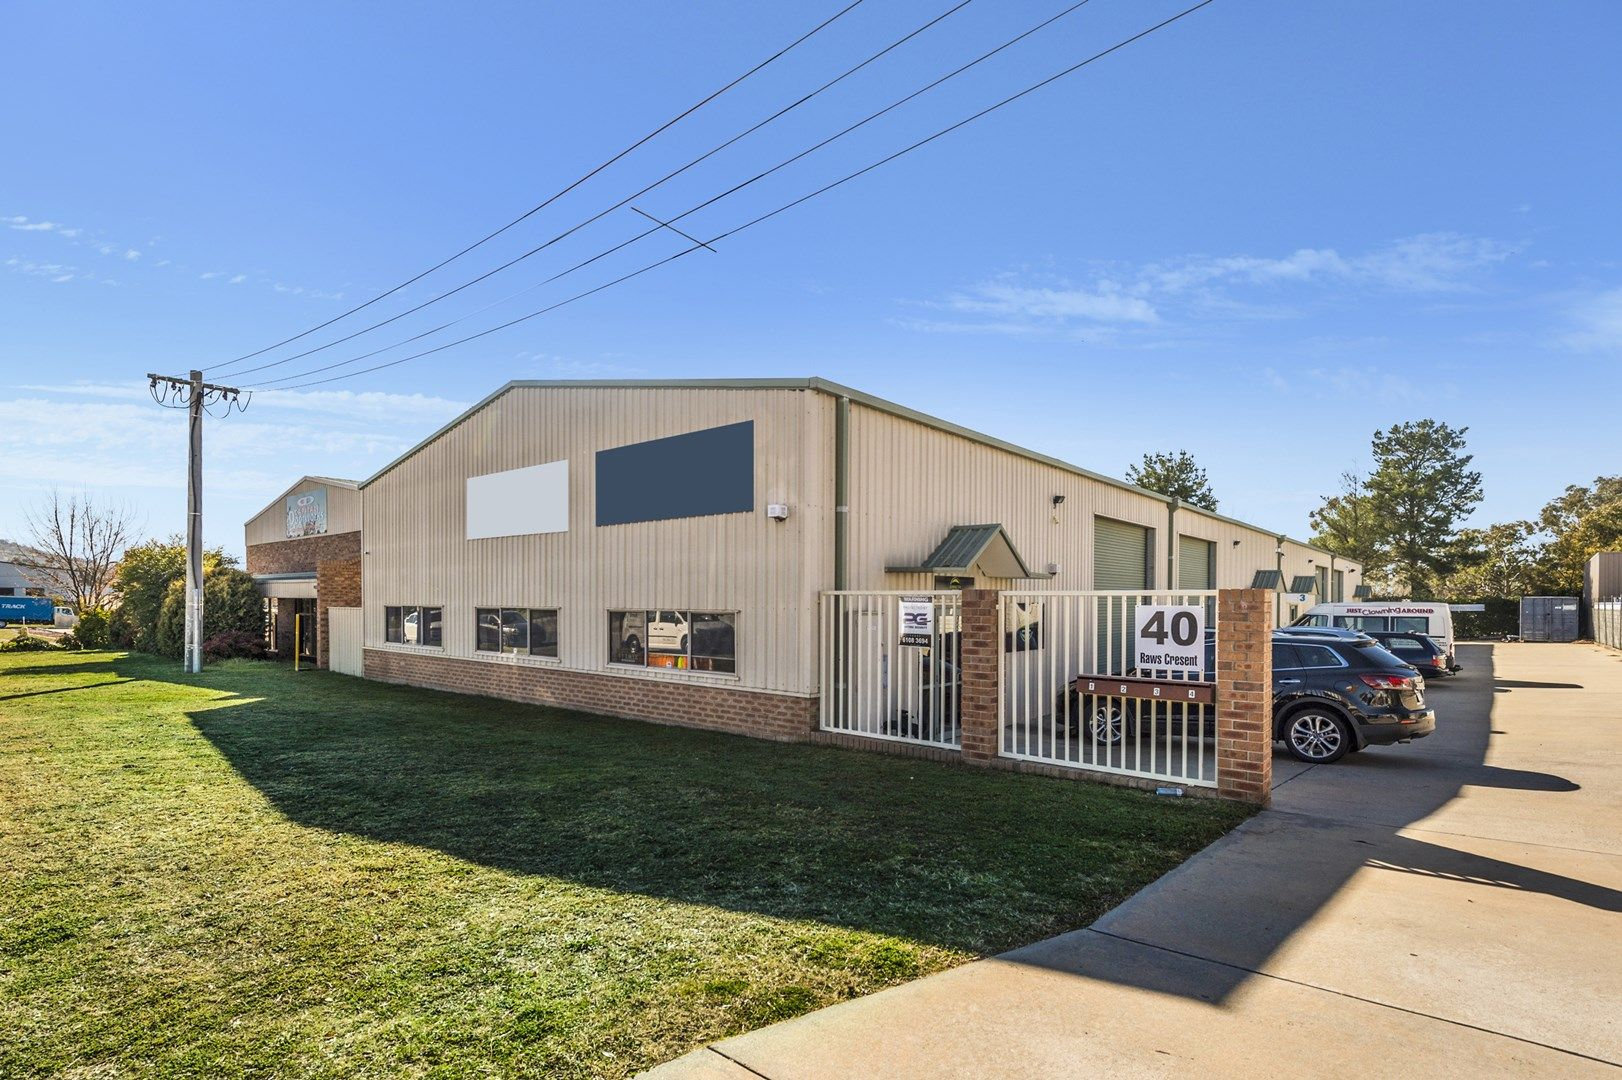 1/40 Raws Crescent, Hume ACT 2620, Image 0